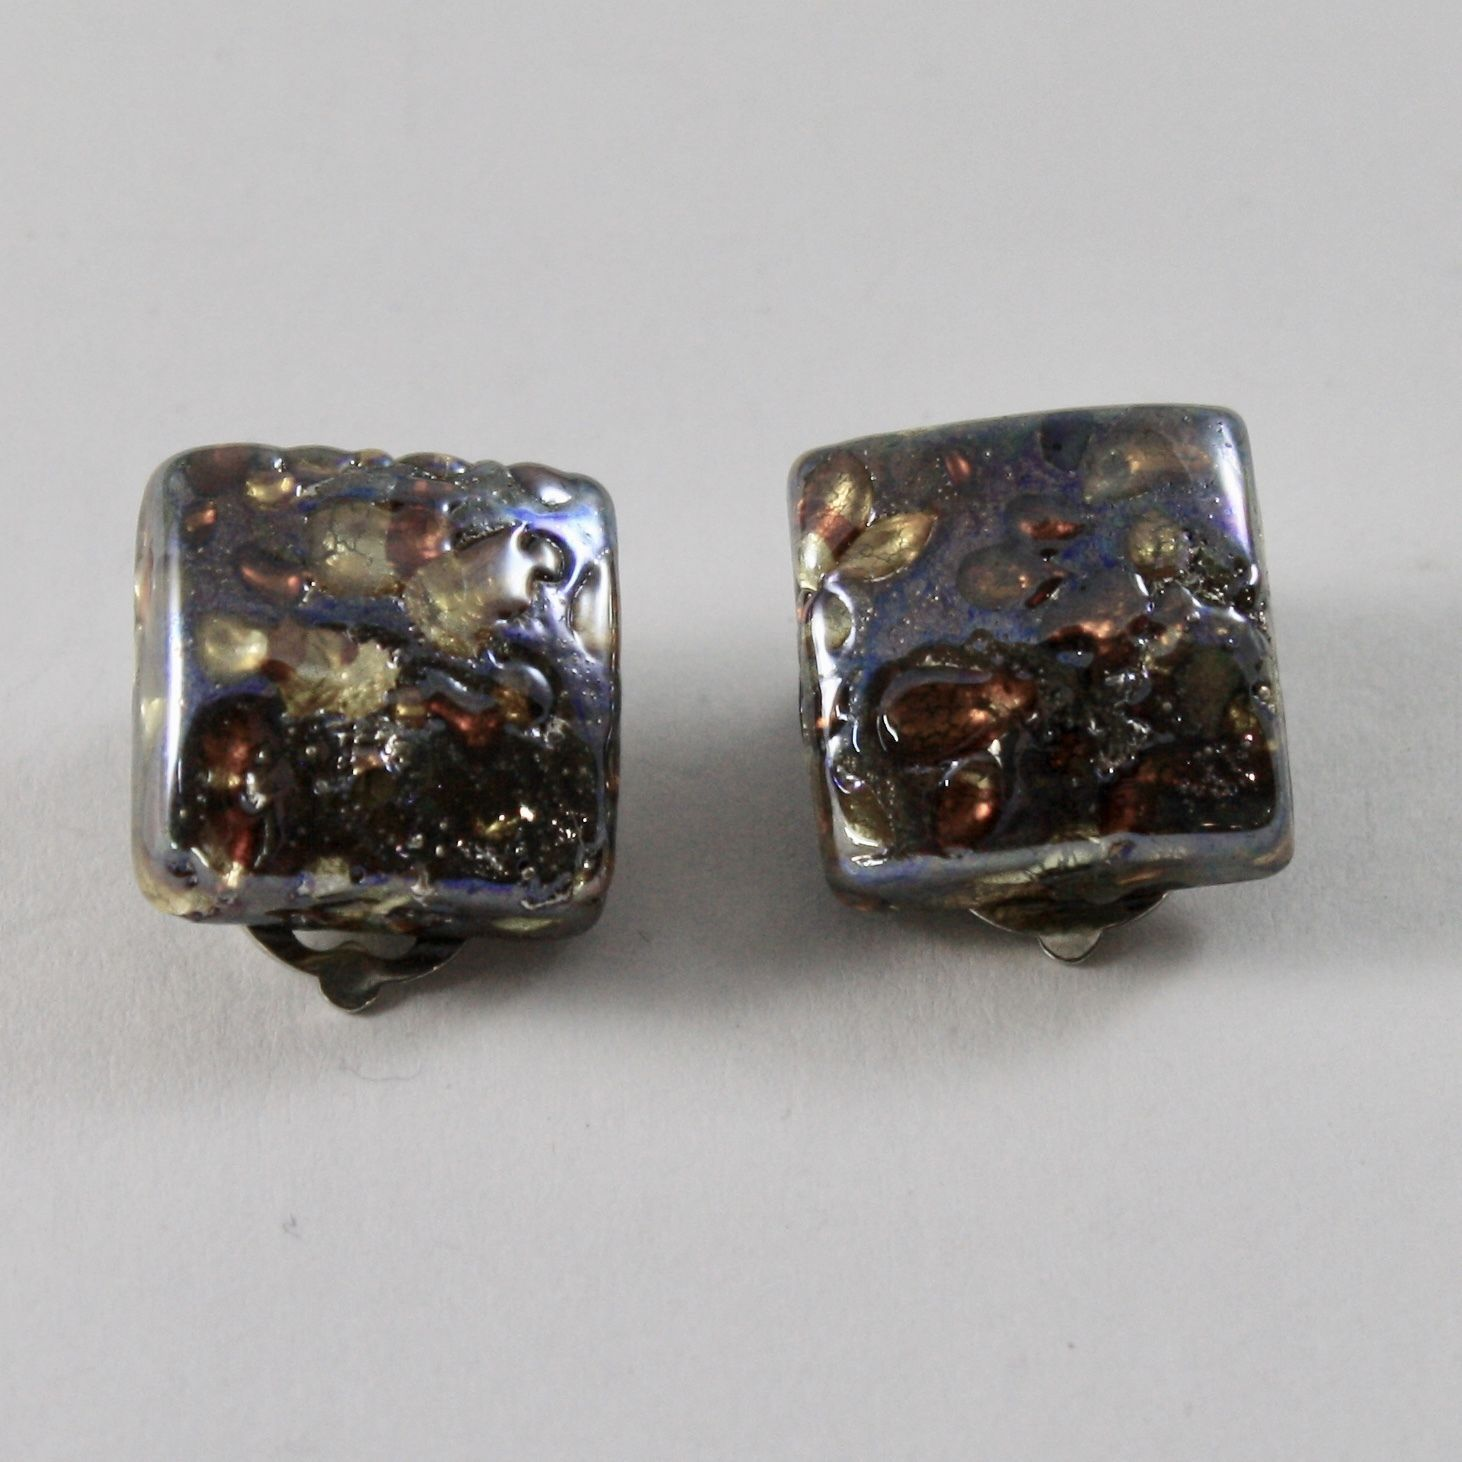 ANTICA MURRINA VENEZIA COLLECTION EARRINGS WITH  MURANO GLASS SQUARES